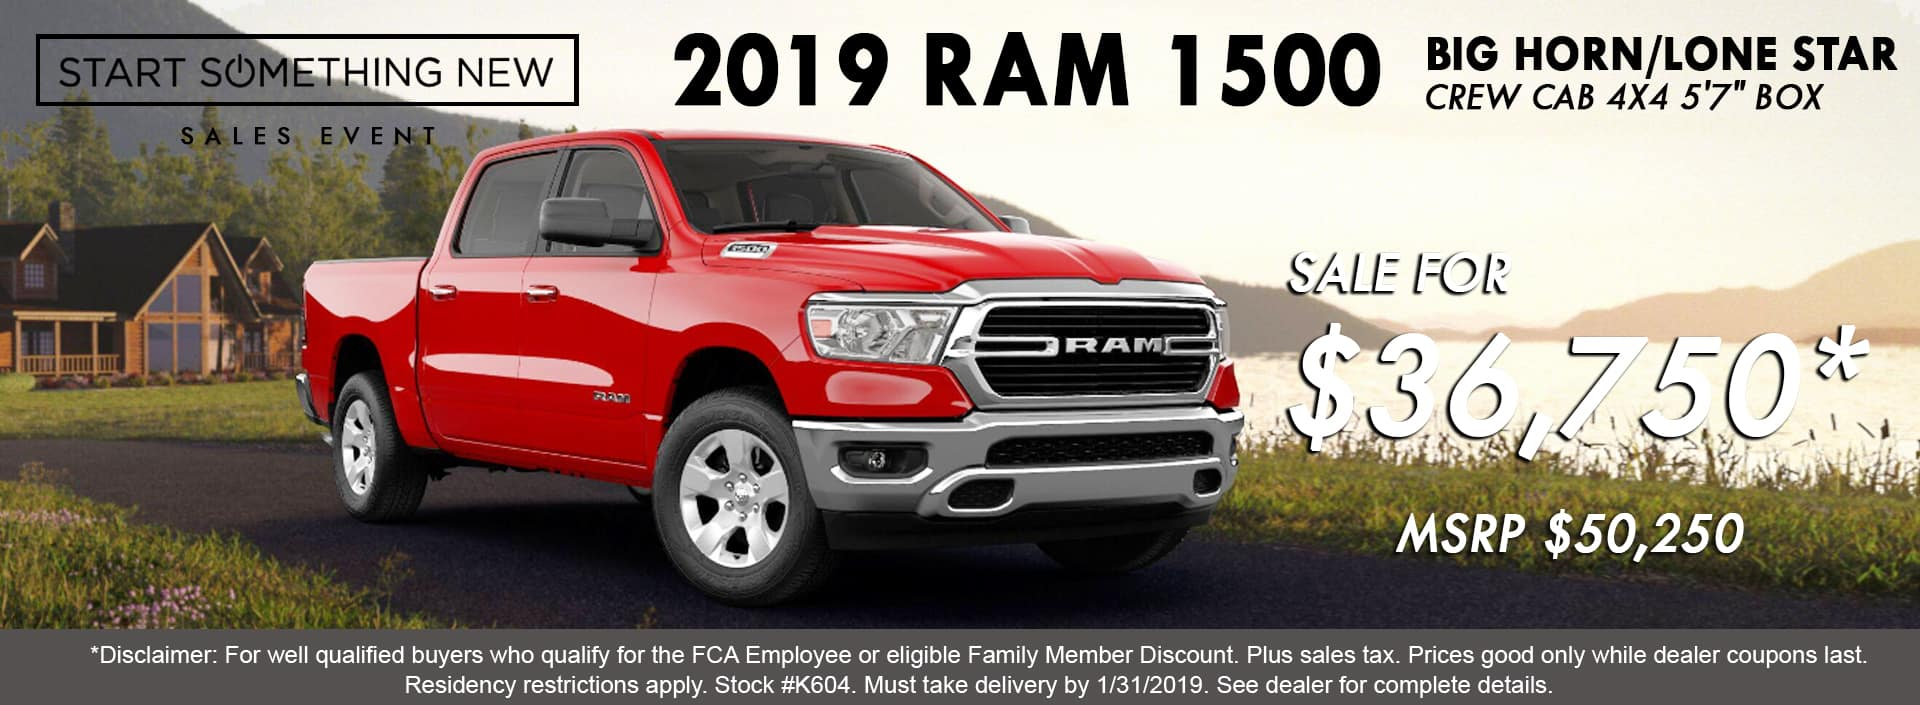 2019 Ram 1500 Big Horn Crew Cab 4X4, Flame Red, K604, MSRP $50,250, Sale Price $36,750*